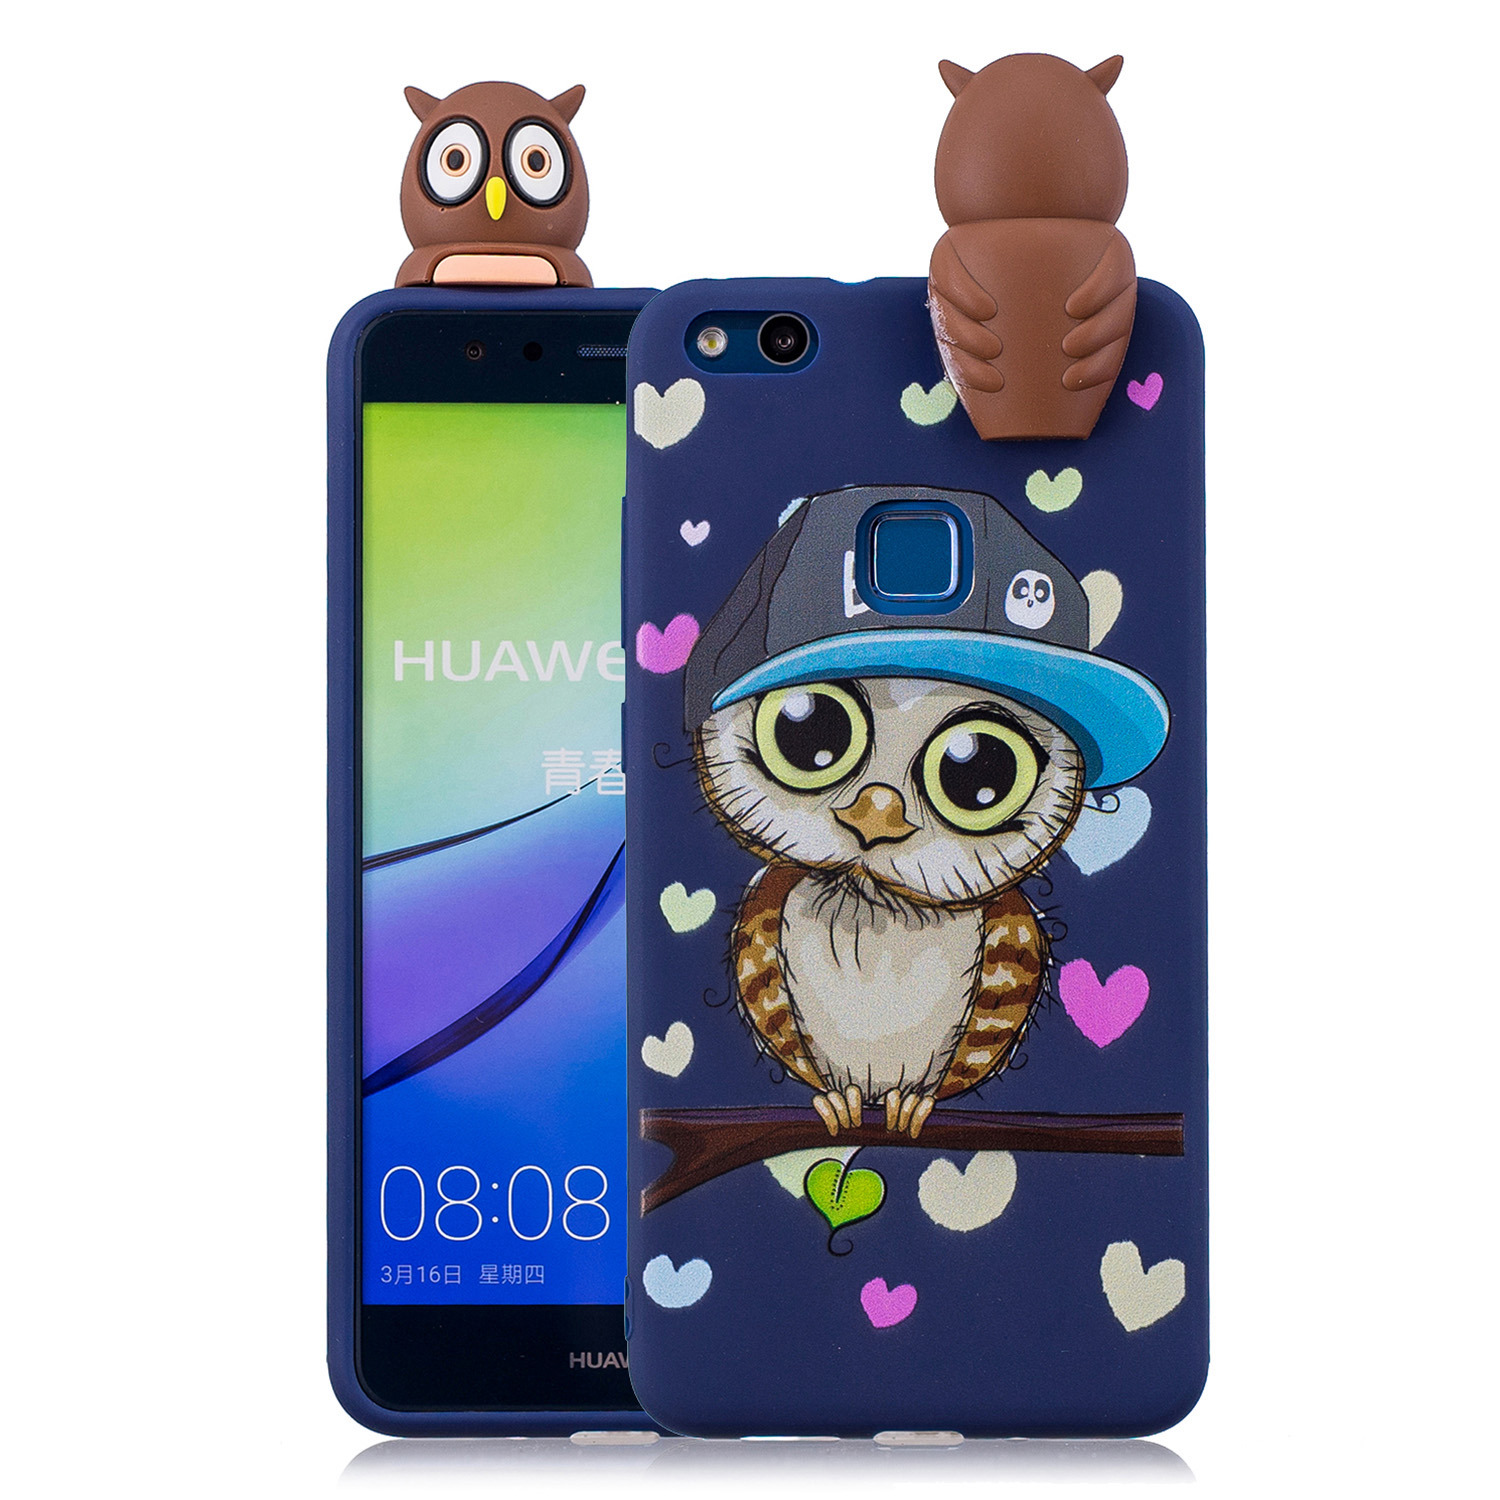 Top environmental protection mobile <font><b>phone</b></font> <font><b>case</b></font> for Huawei p10 lite durable clay soft shell Lovely Cartoon White Squishy cover